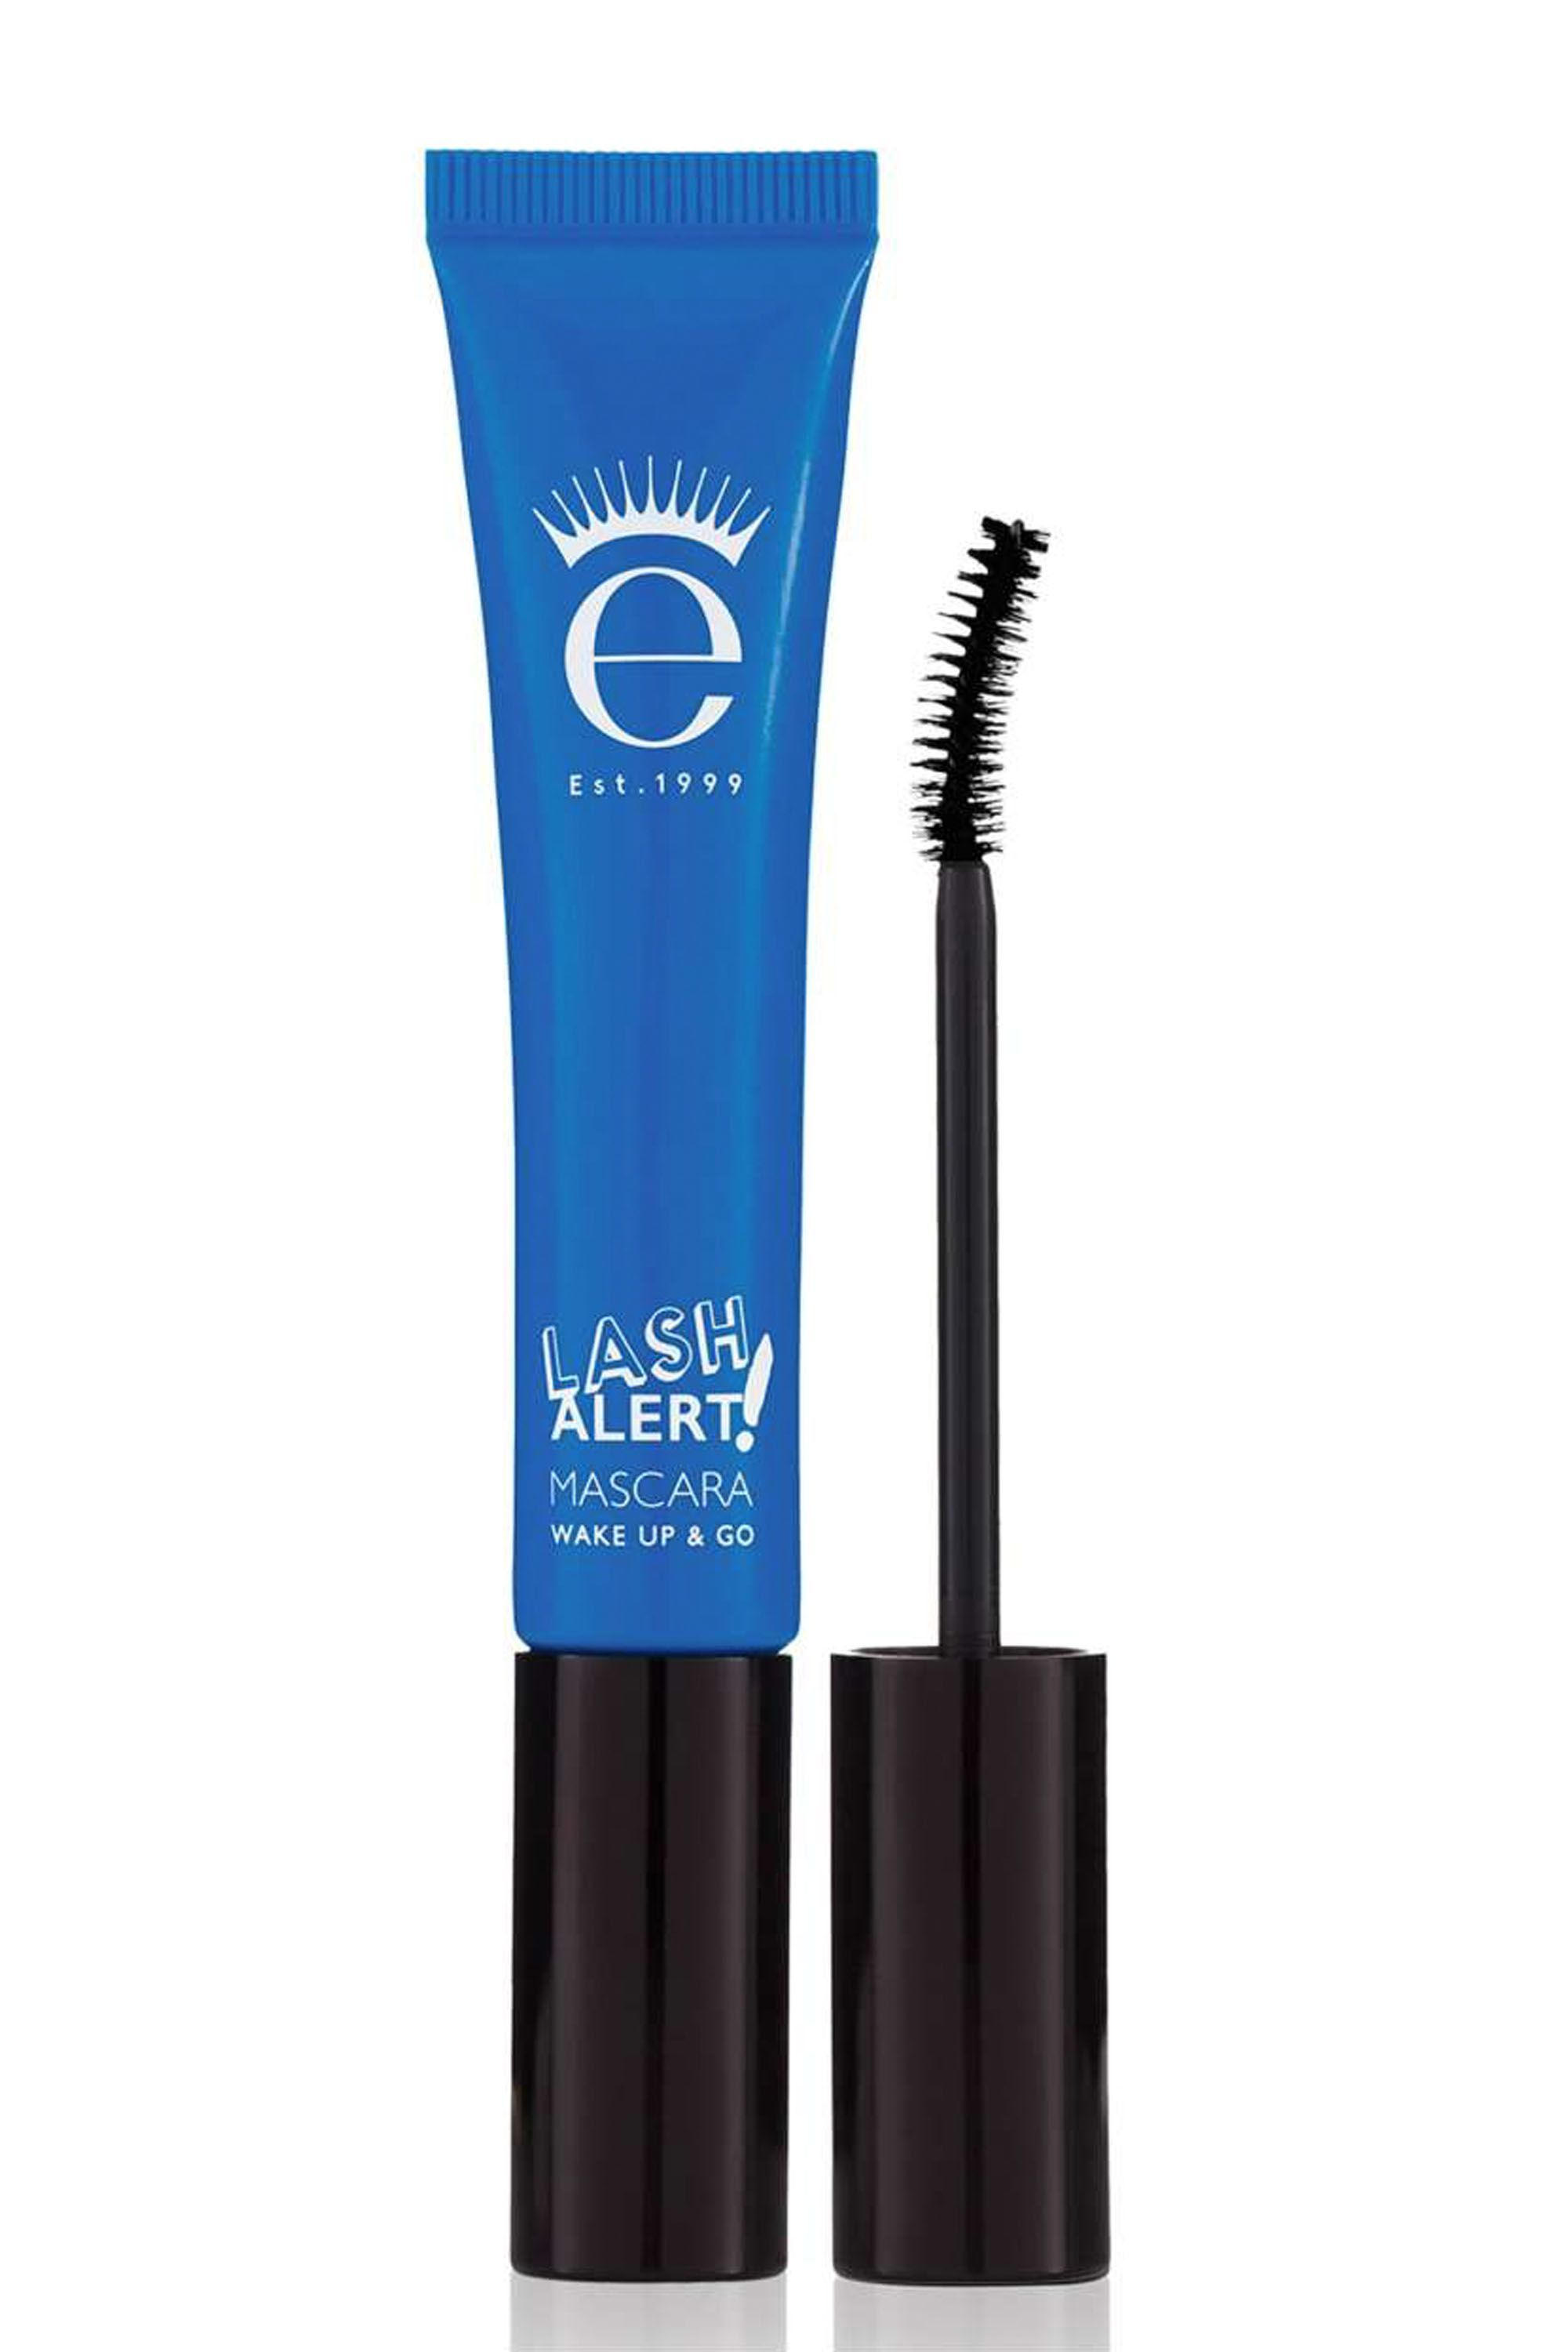 """Online Only Lash Alert Mascara Eyeko ulta.com $26.00 SHOP NOW """"I sleep with a face mask on at night so when I wake up my eyelashes are usually all over the place. Eyeko's Lash Alert is the only mascara to control my unruly lashes. It's packed with shea butter, biotin, and caffeine, all of which hydrate, nourish, and stimulate my lashes. I've said goodbye to my 'bed lashes' for good!"""" ― Chloe Hall, Special Projects Editor and Producer"""